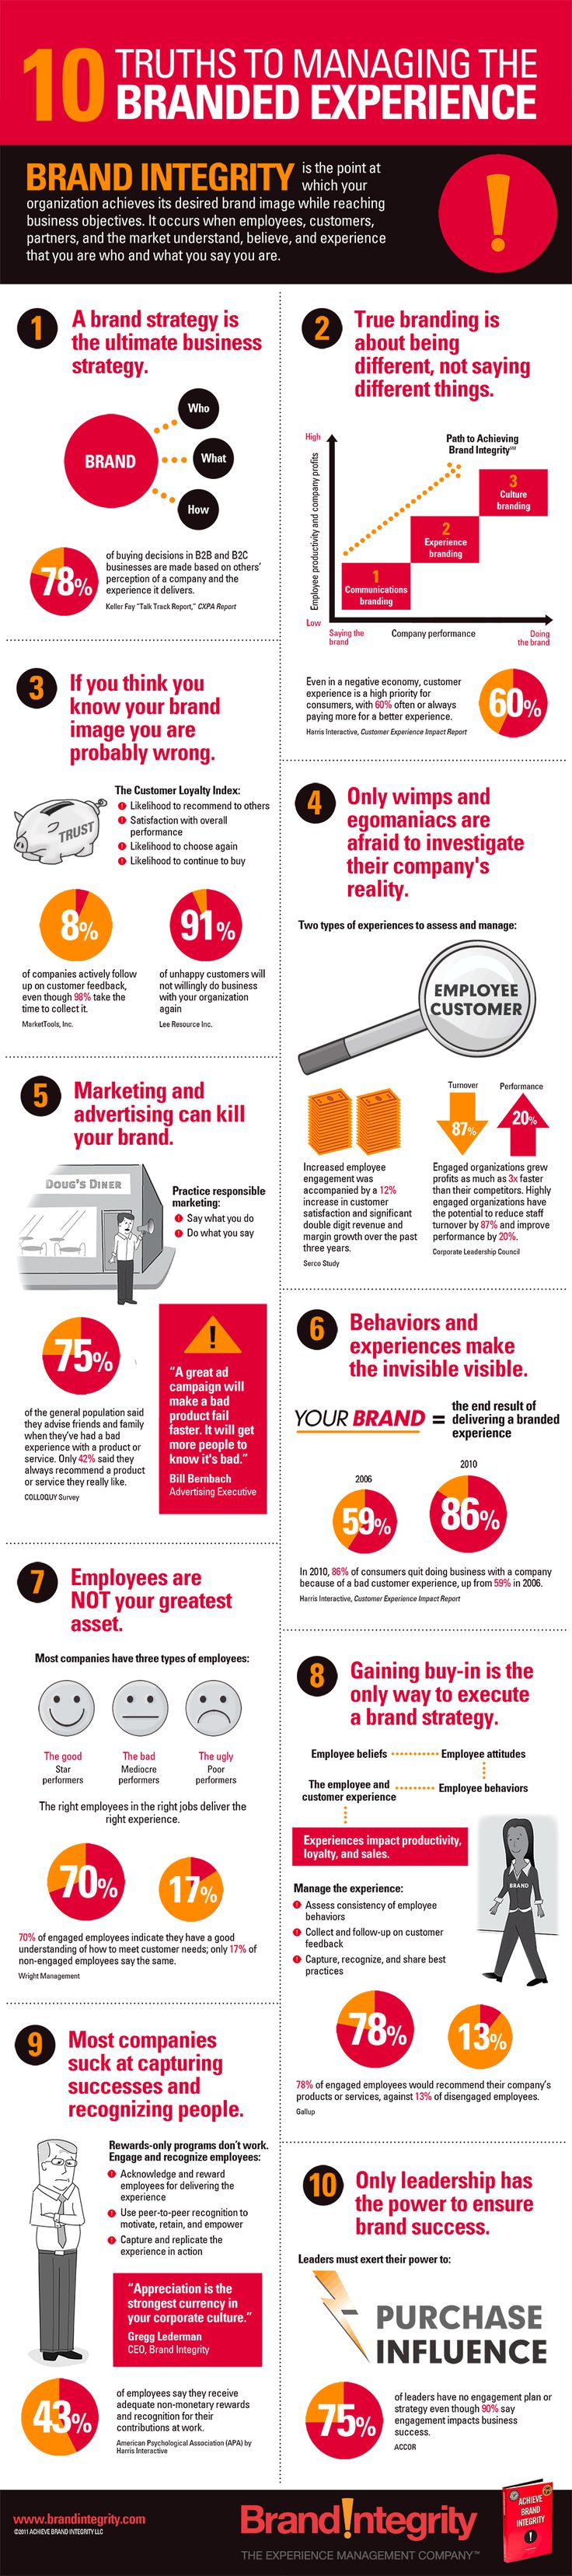 Managing the Branded Experience [Infographic]